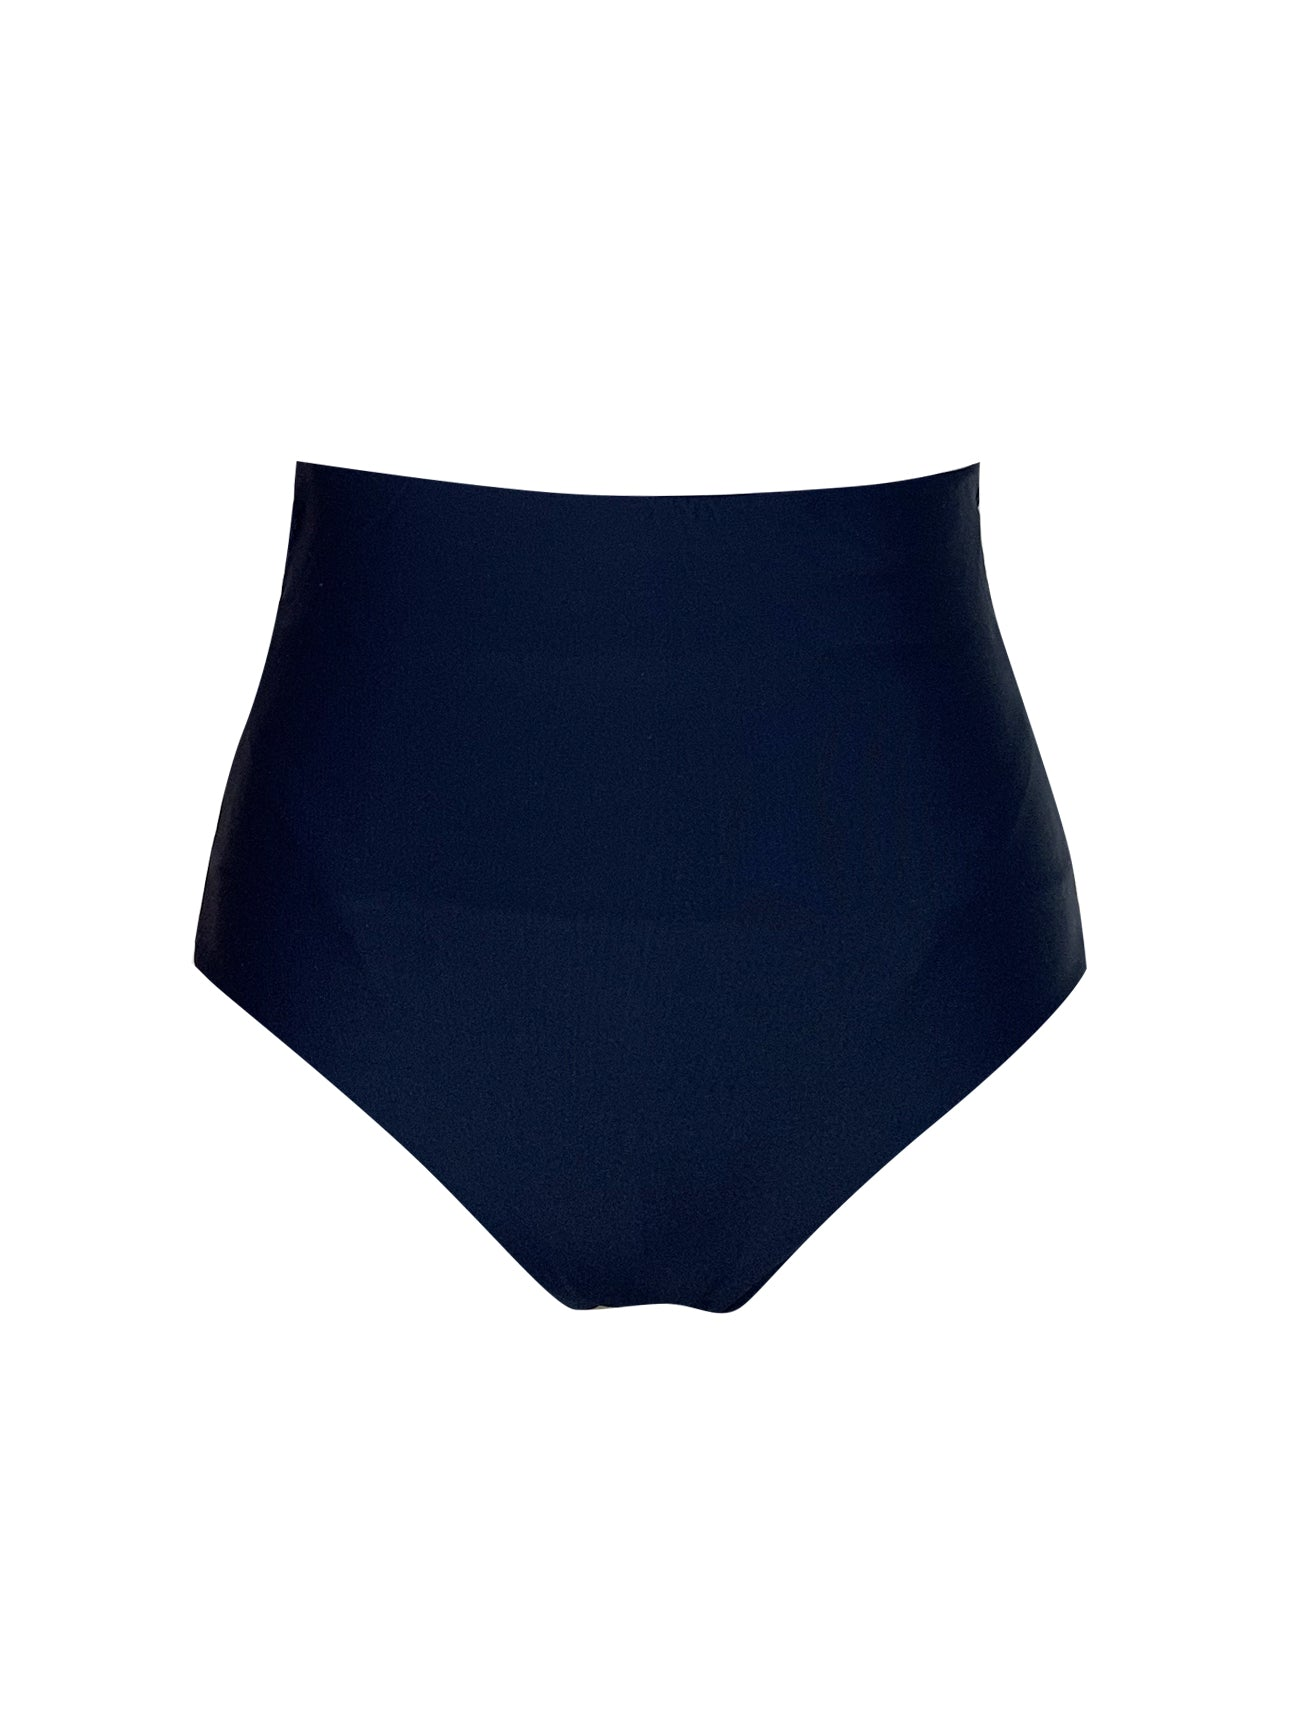 KUTA REVERSIBLE HIGH WAIST BOTTOM | OCEAN